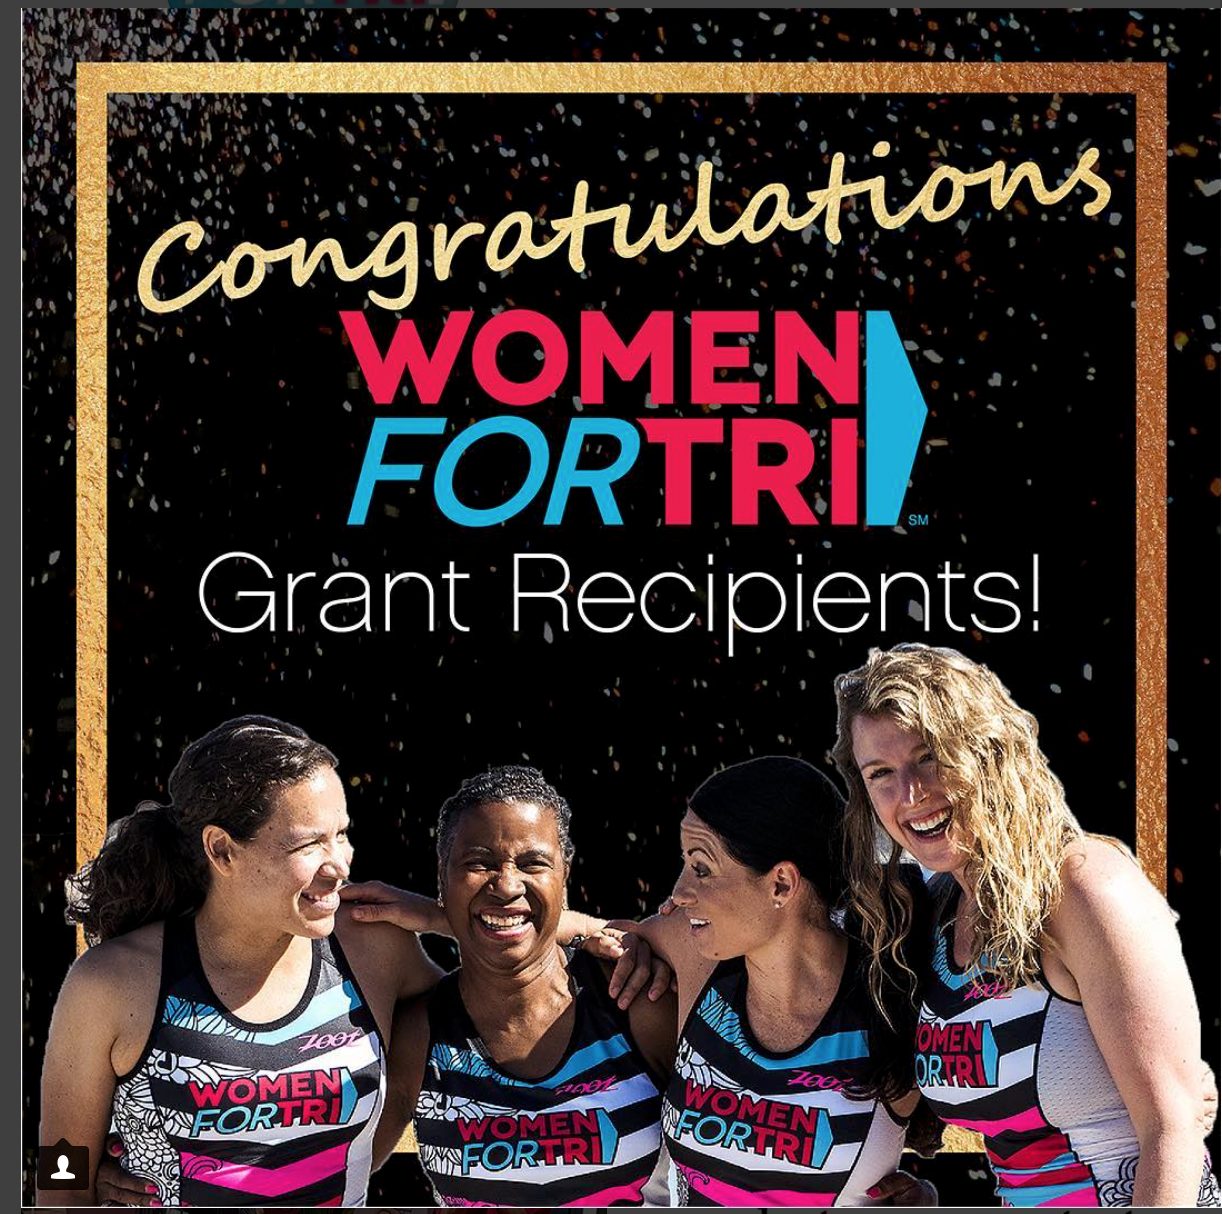 Ironman Foundation's Women for Tri Grant 2018